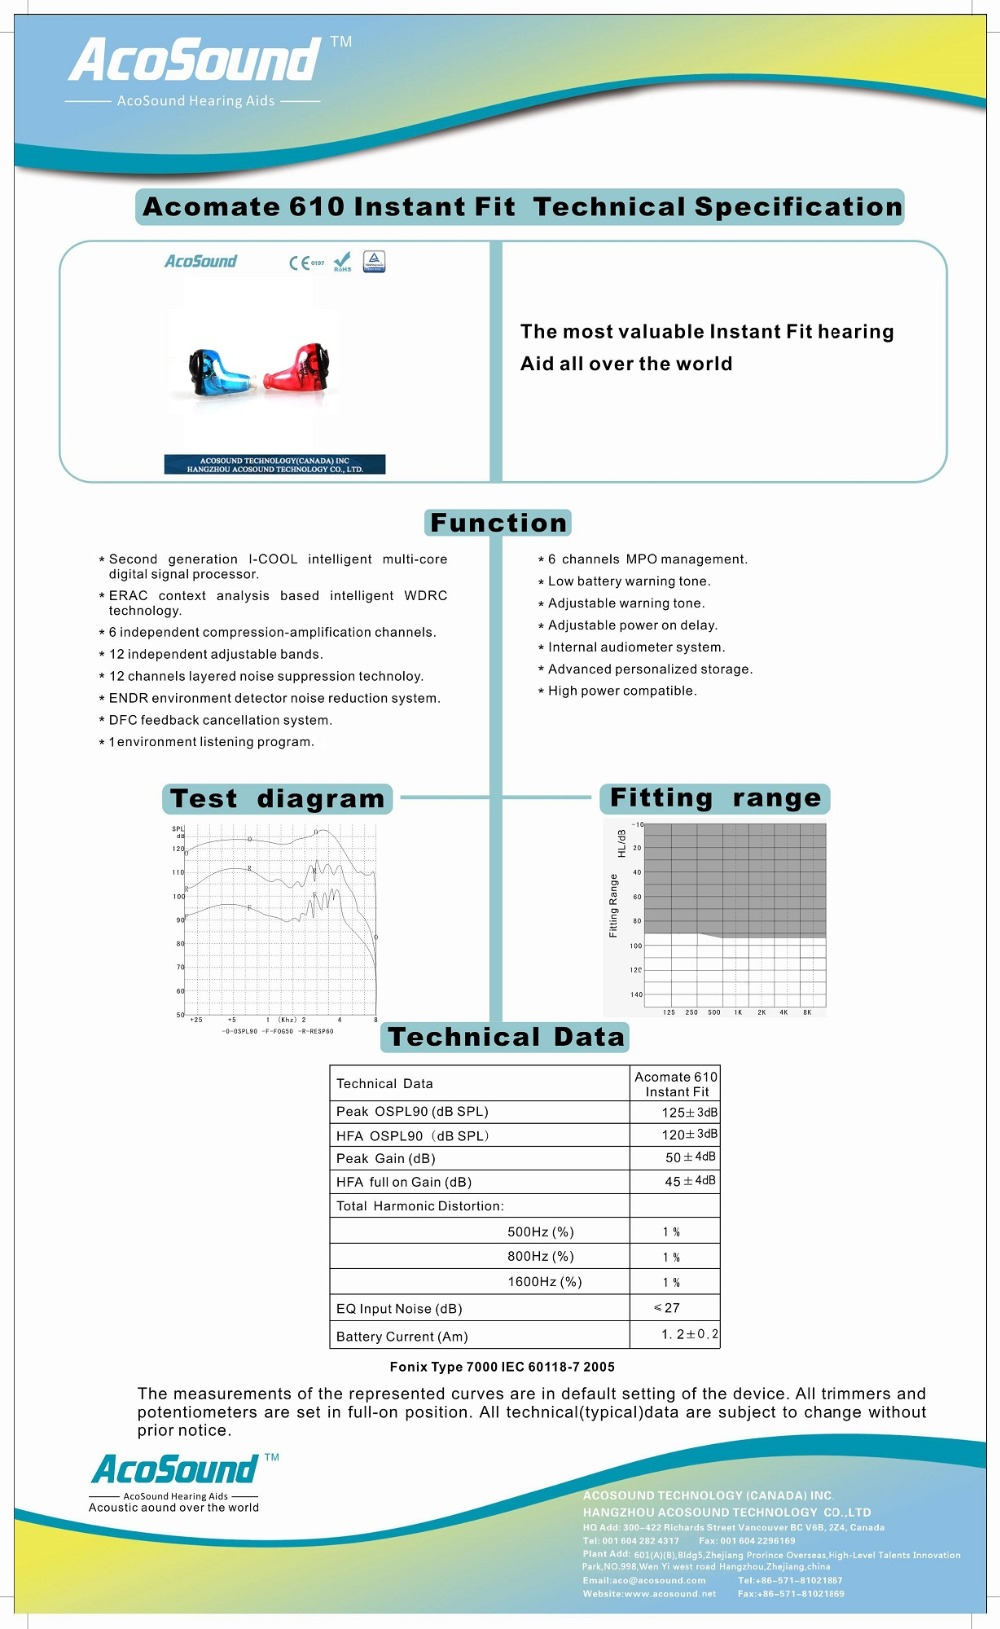 Technical data of 610 instant fit